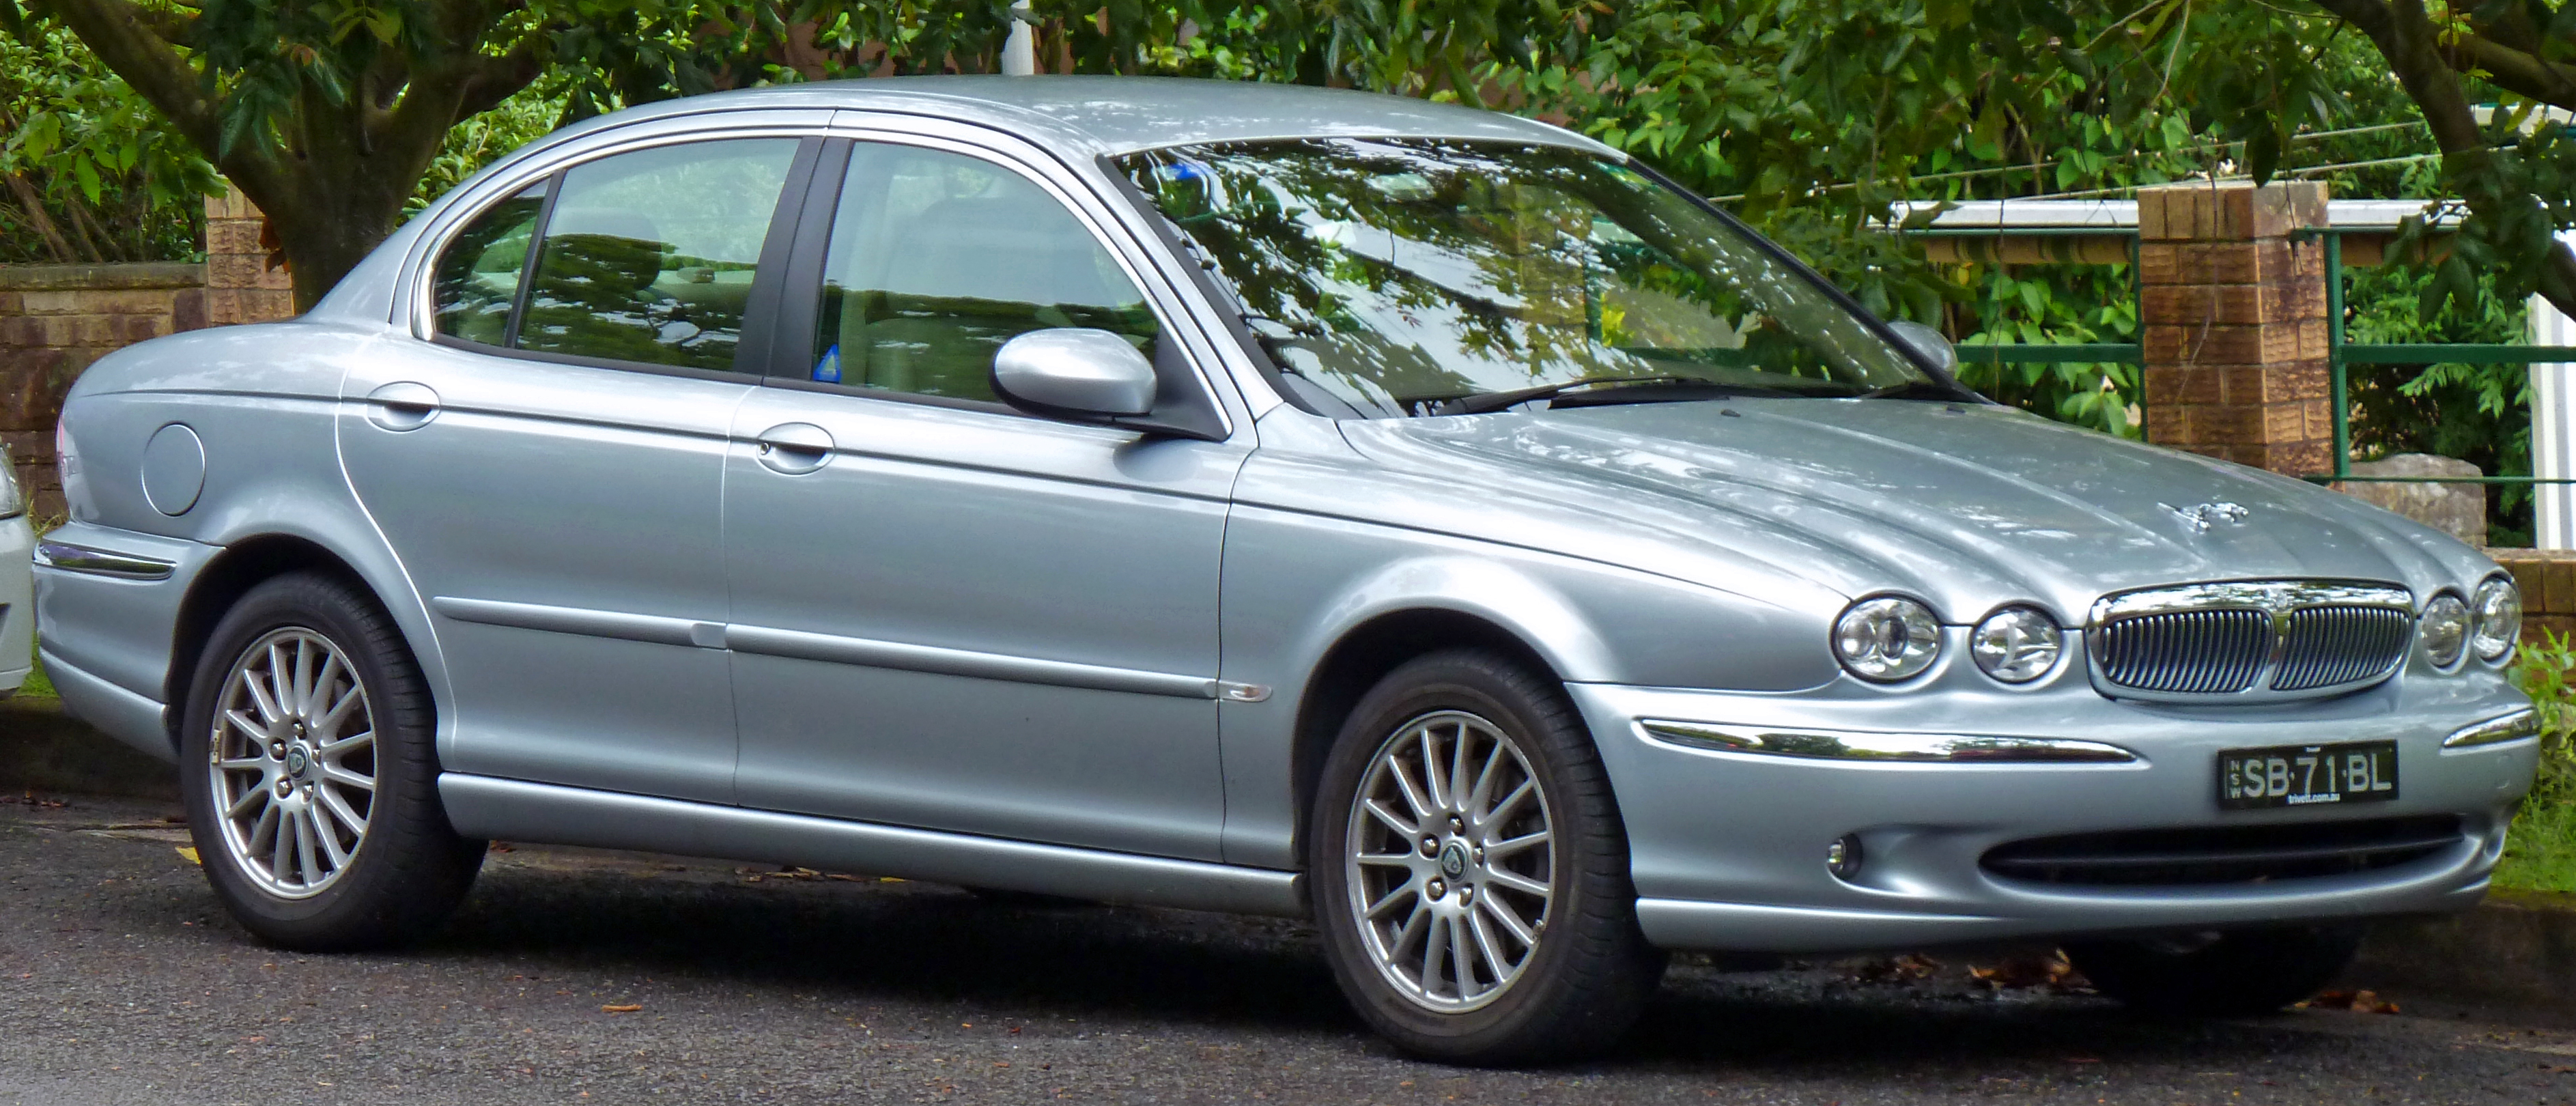 2007 Jaguar X-type #5